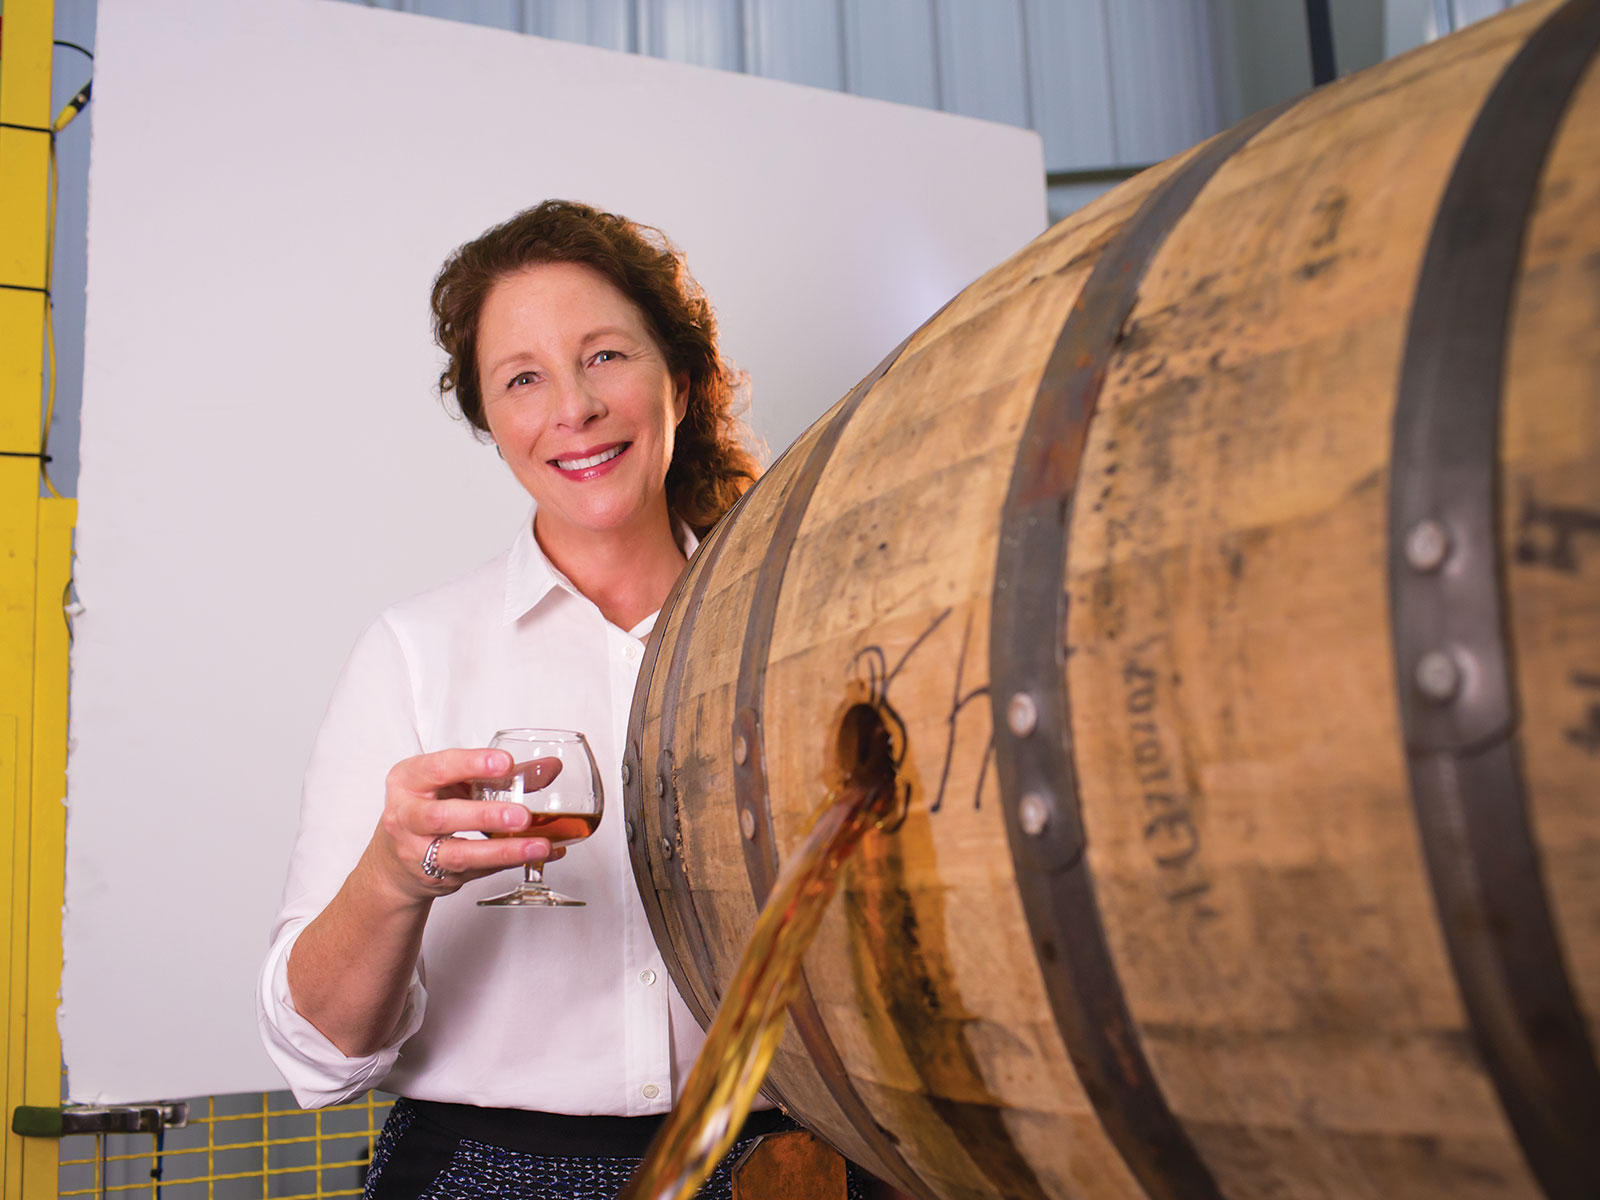 How Victoria MacRae-Samuels Became the First Female VP of Operations in the Bourbon Industry